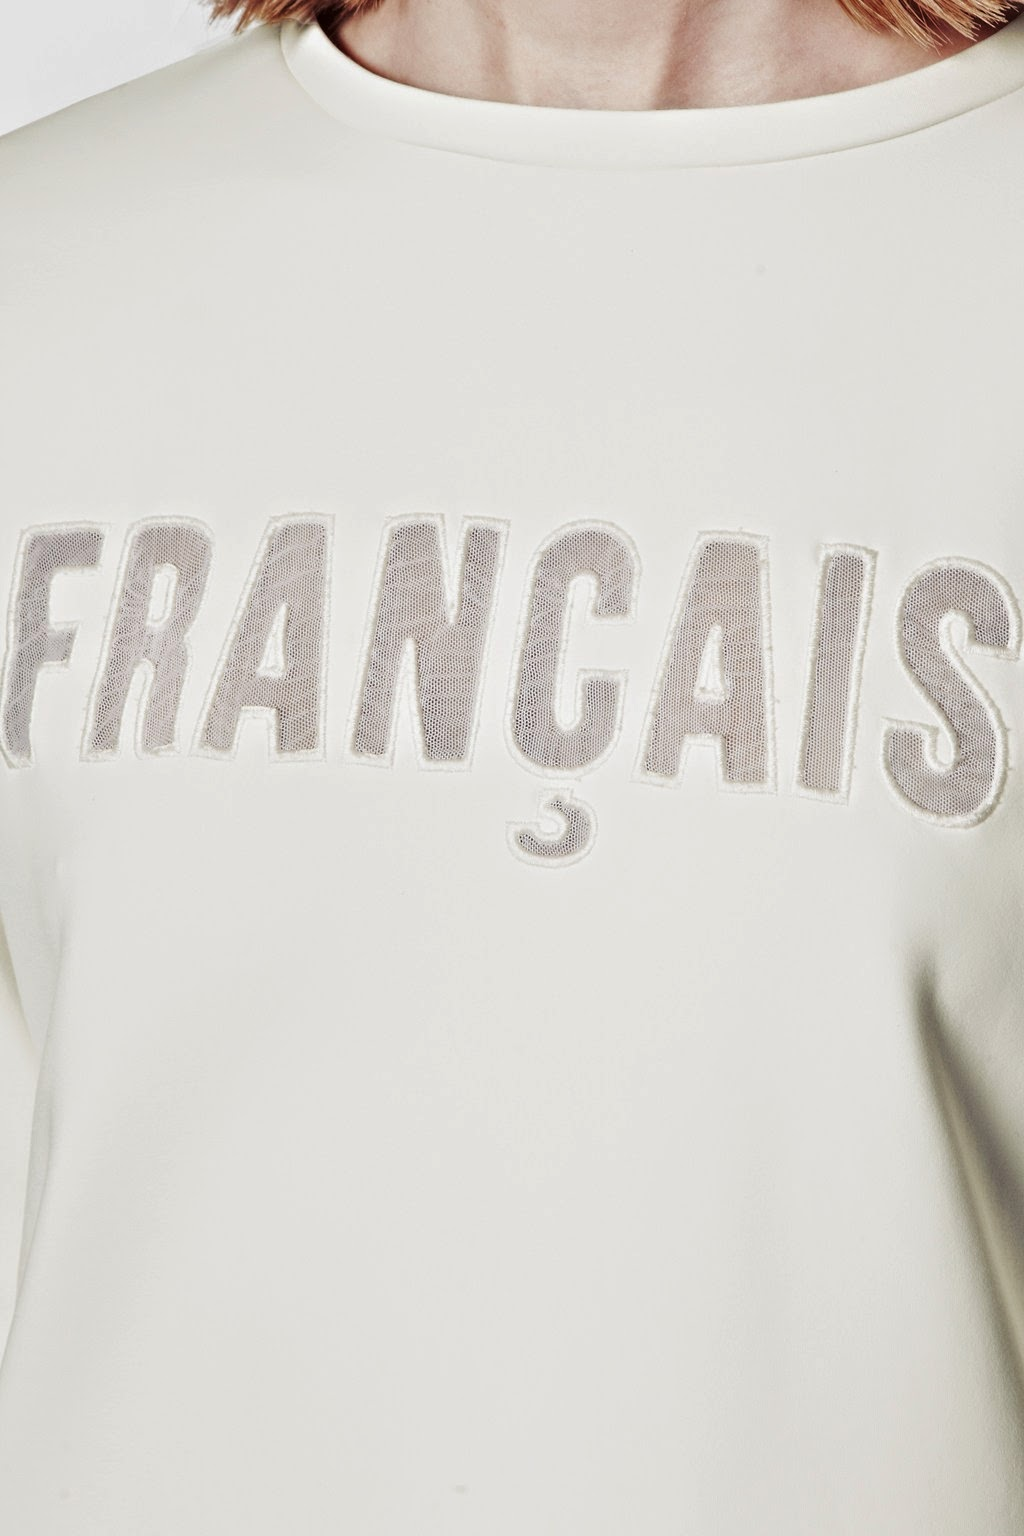 francais jumper, french connection white sweater,